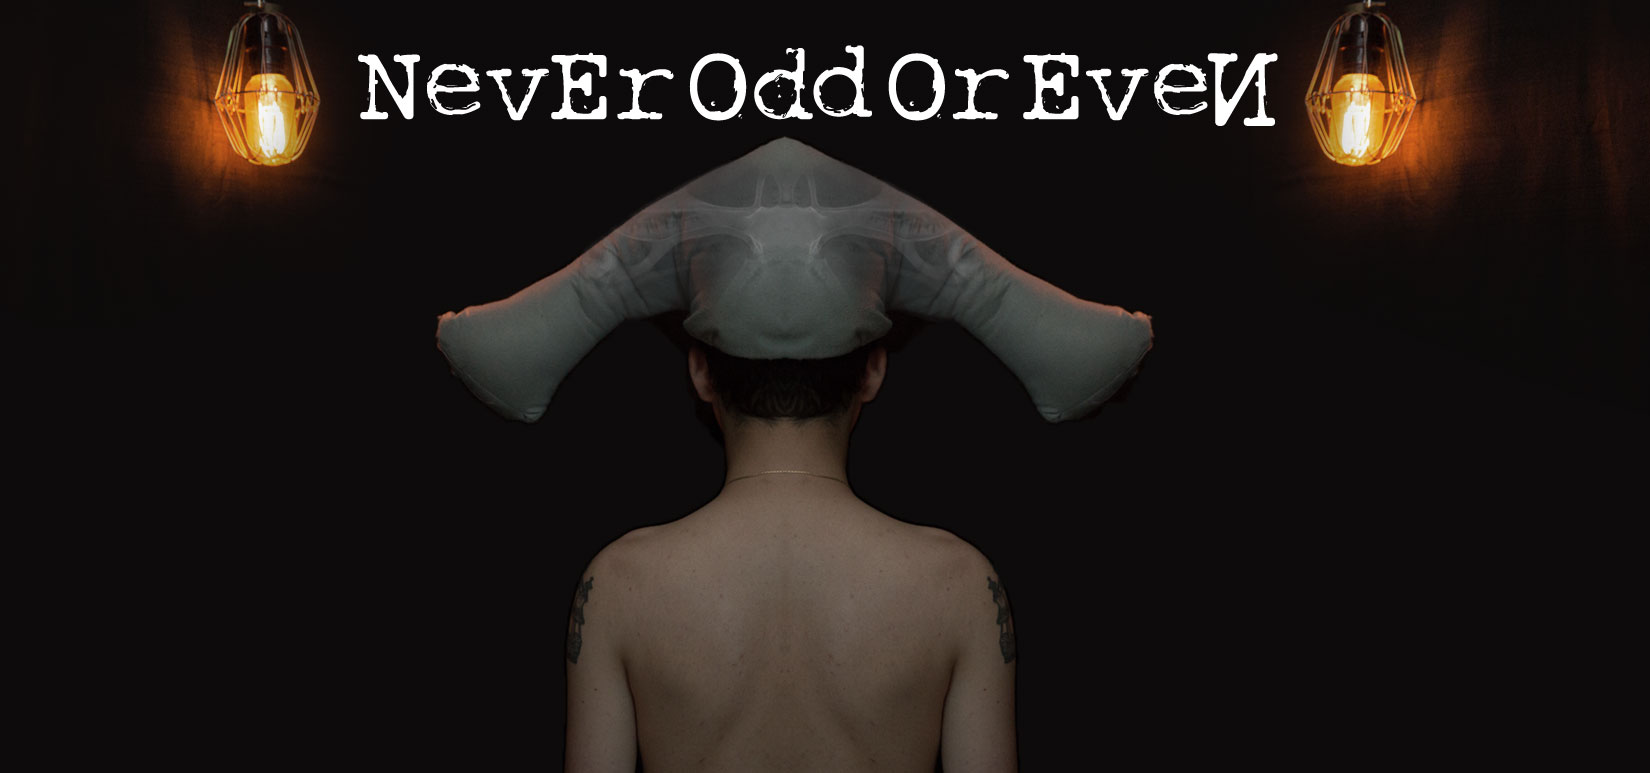 Never Odd or Even - September 2015